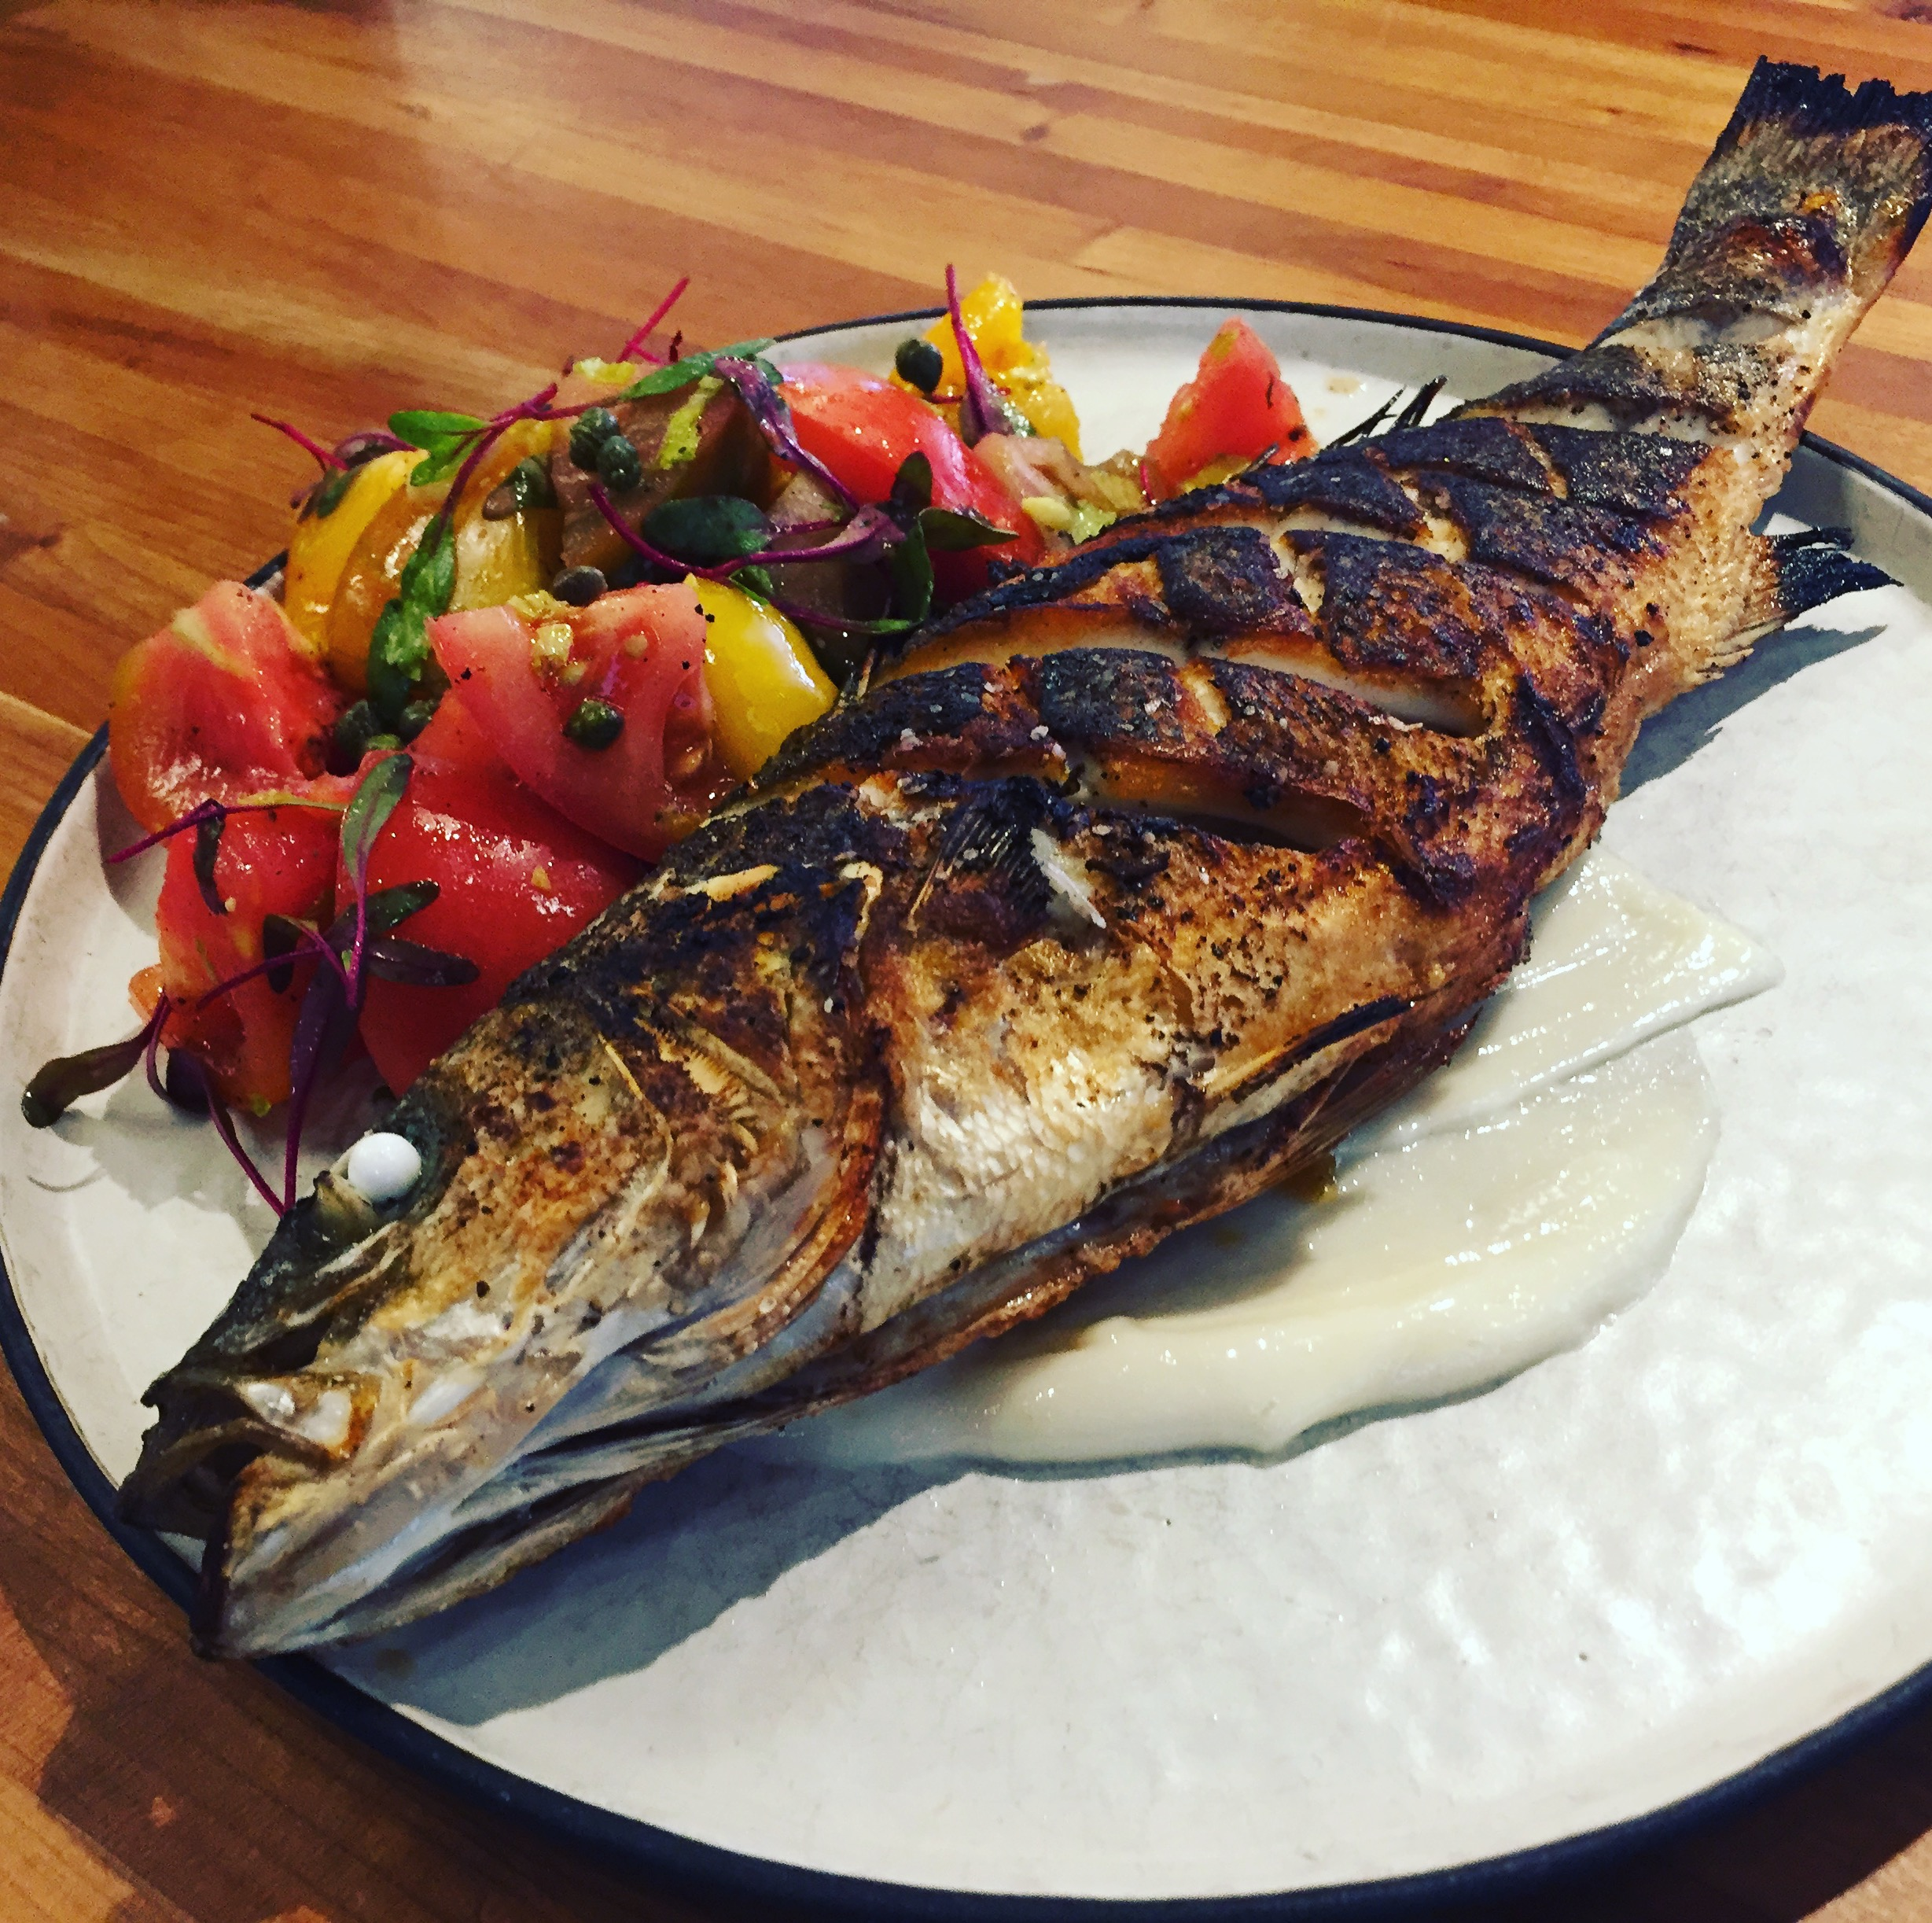 Bistro Bella Vita's whole roasted branzino